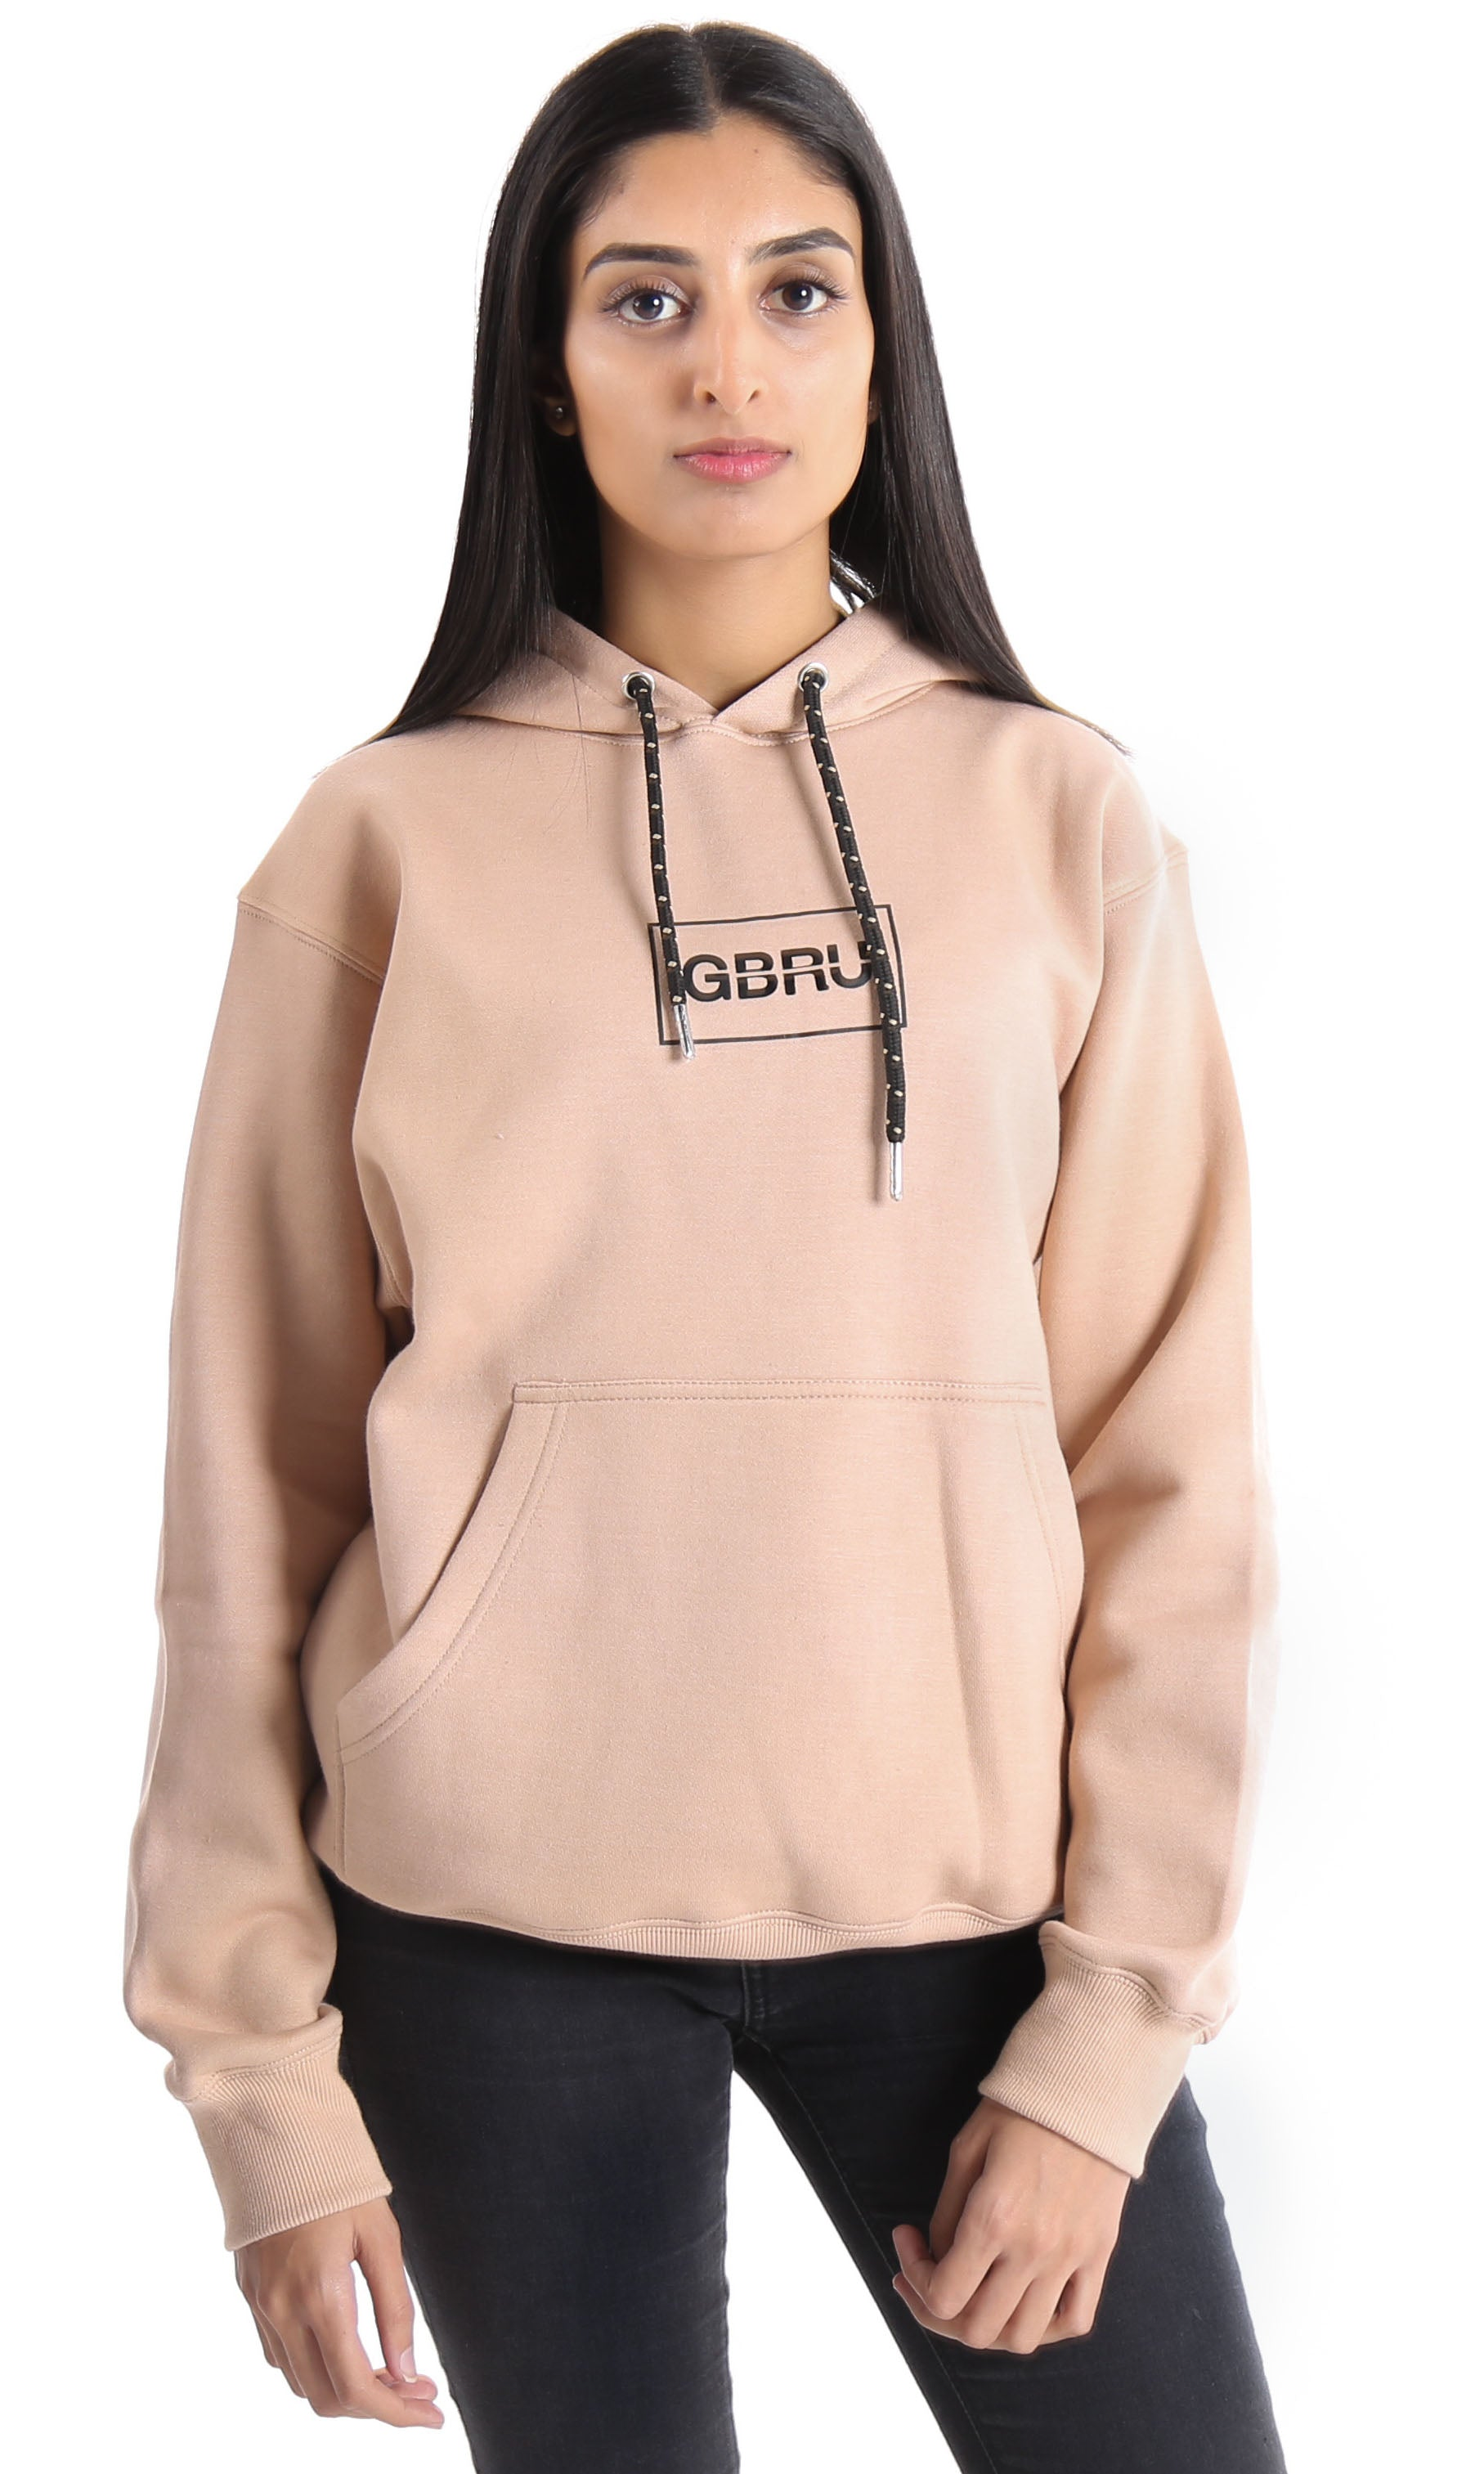 GABRU W19 - Printed Gabru Hooded Sweat - Chai